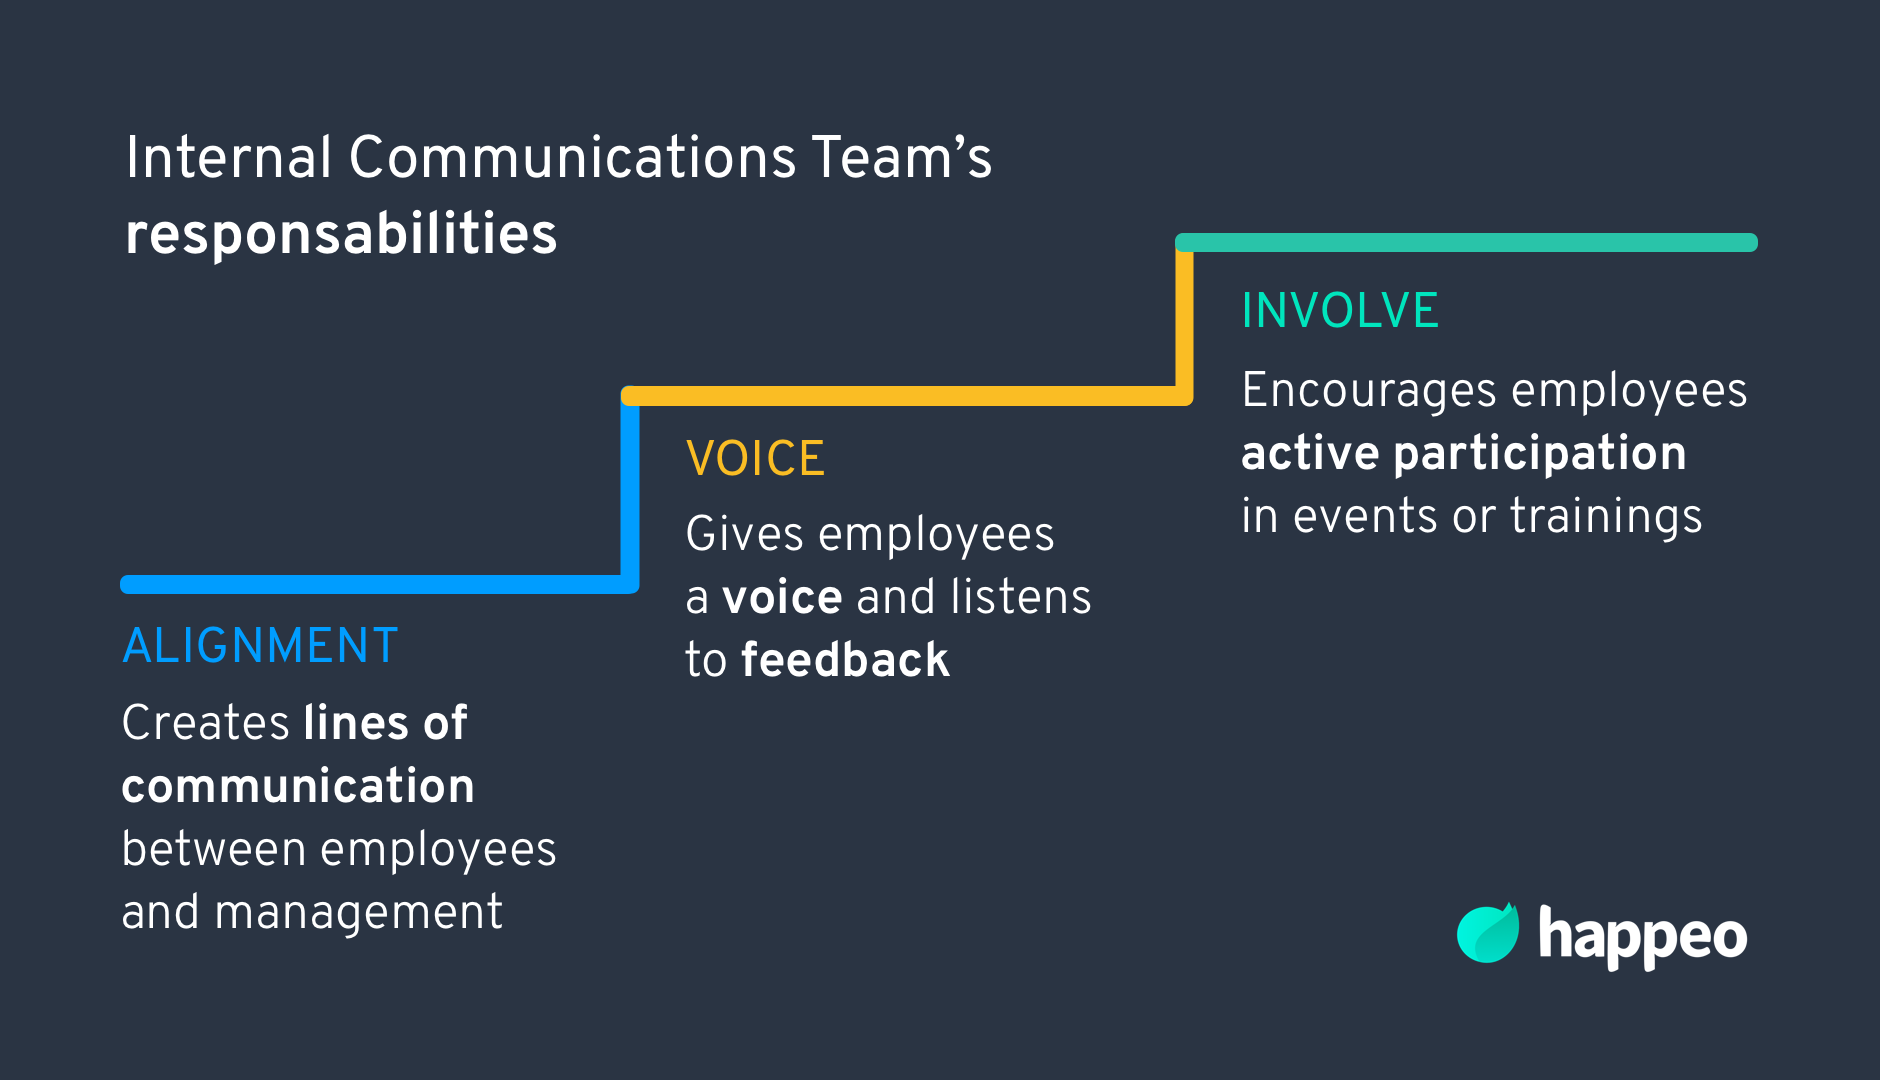 responsibilities of an internal communications team